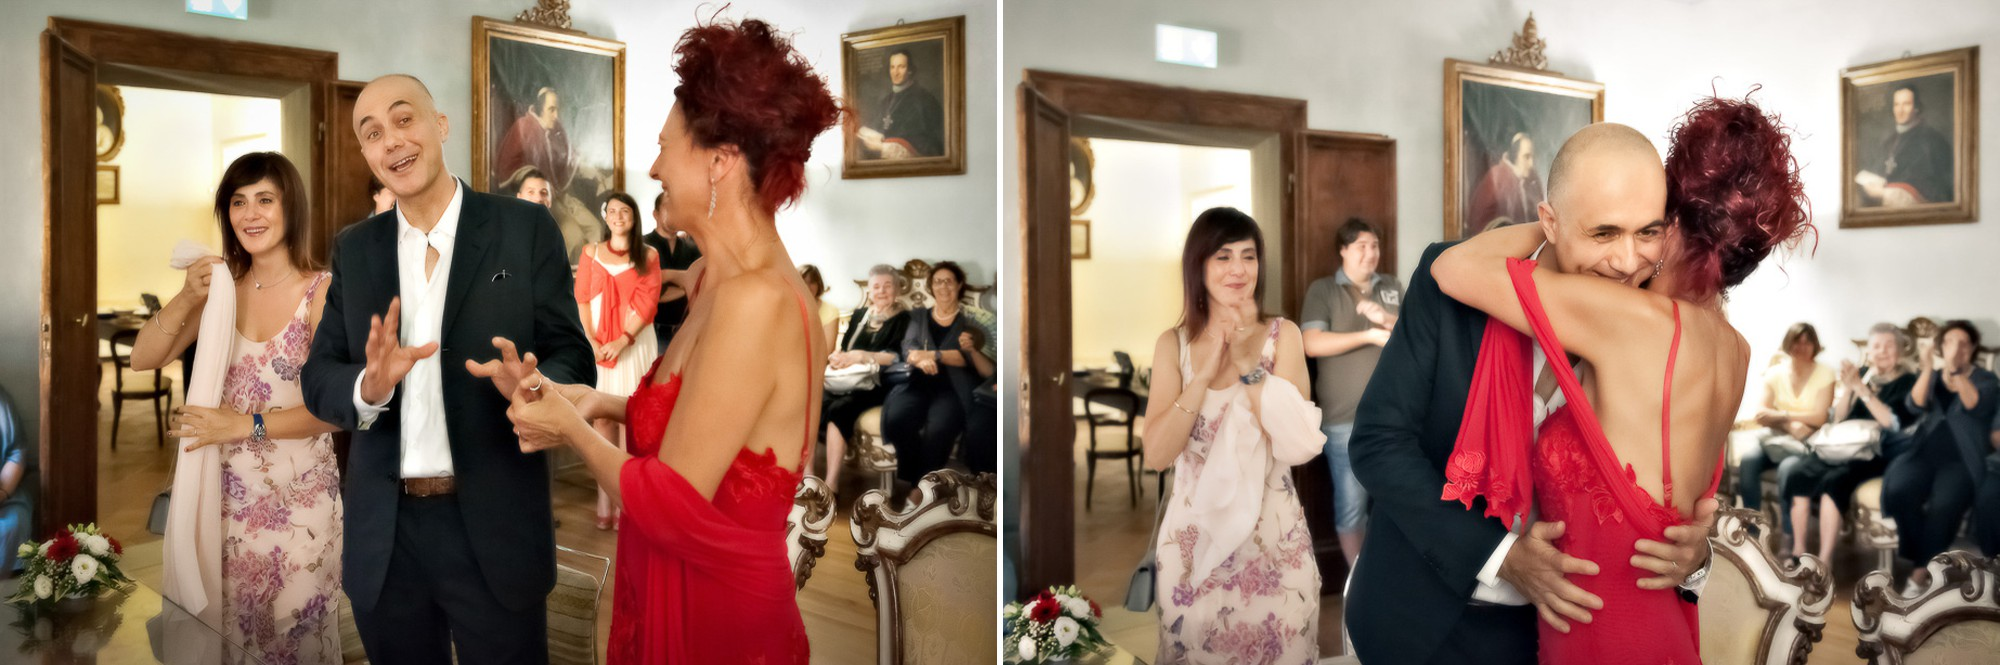 rito-civile-matrimonio-tagg-photography